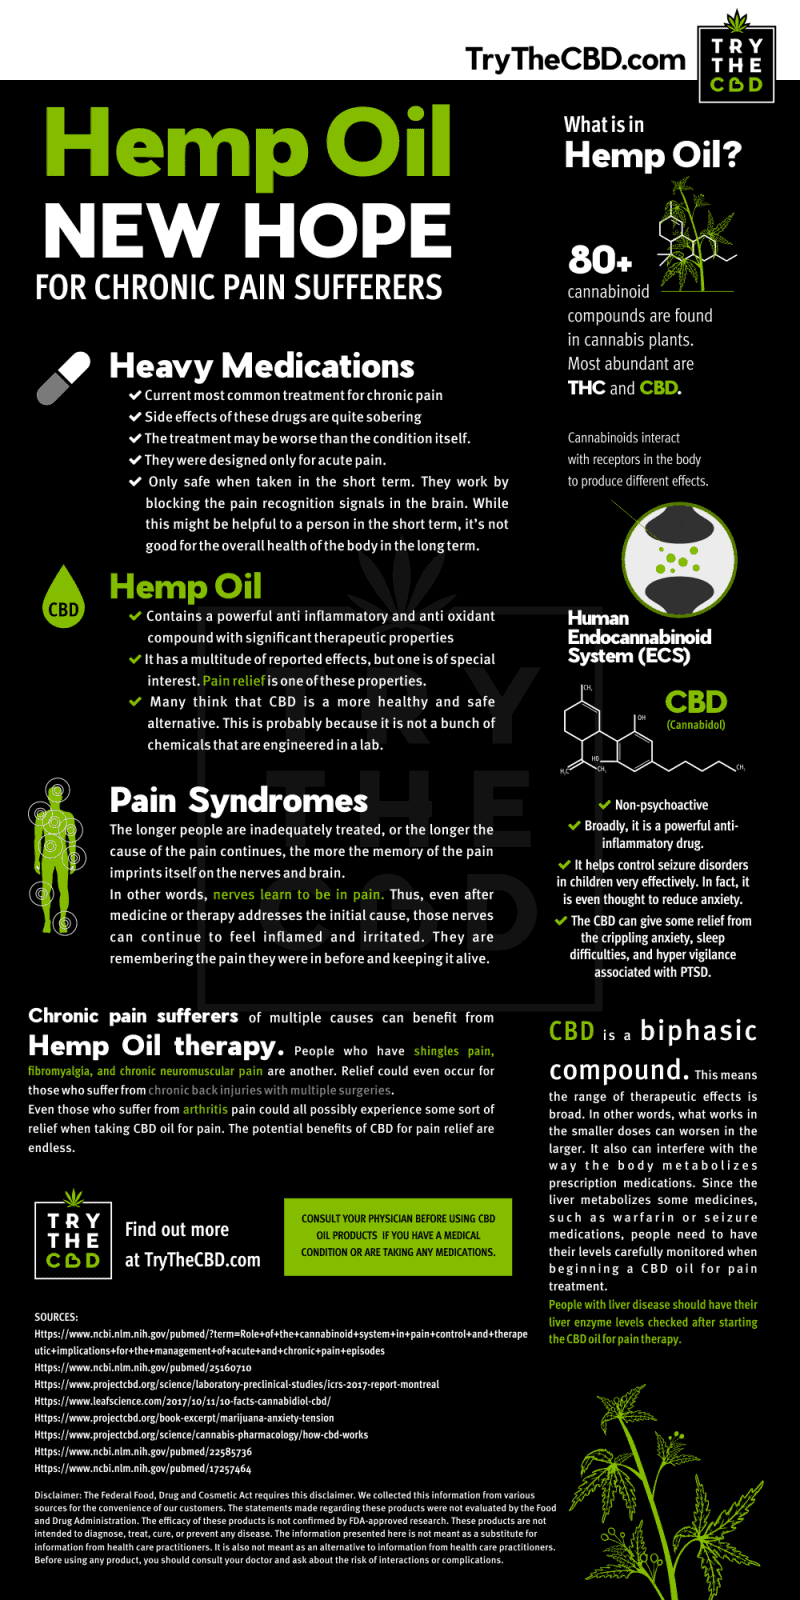 Hemp Oil New Hope For Chronic Pain Sufferers